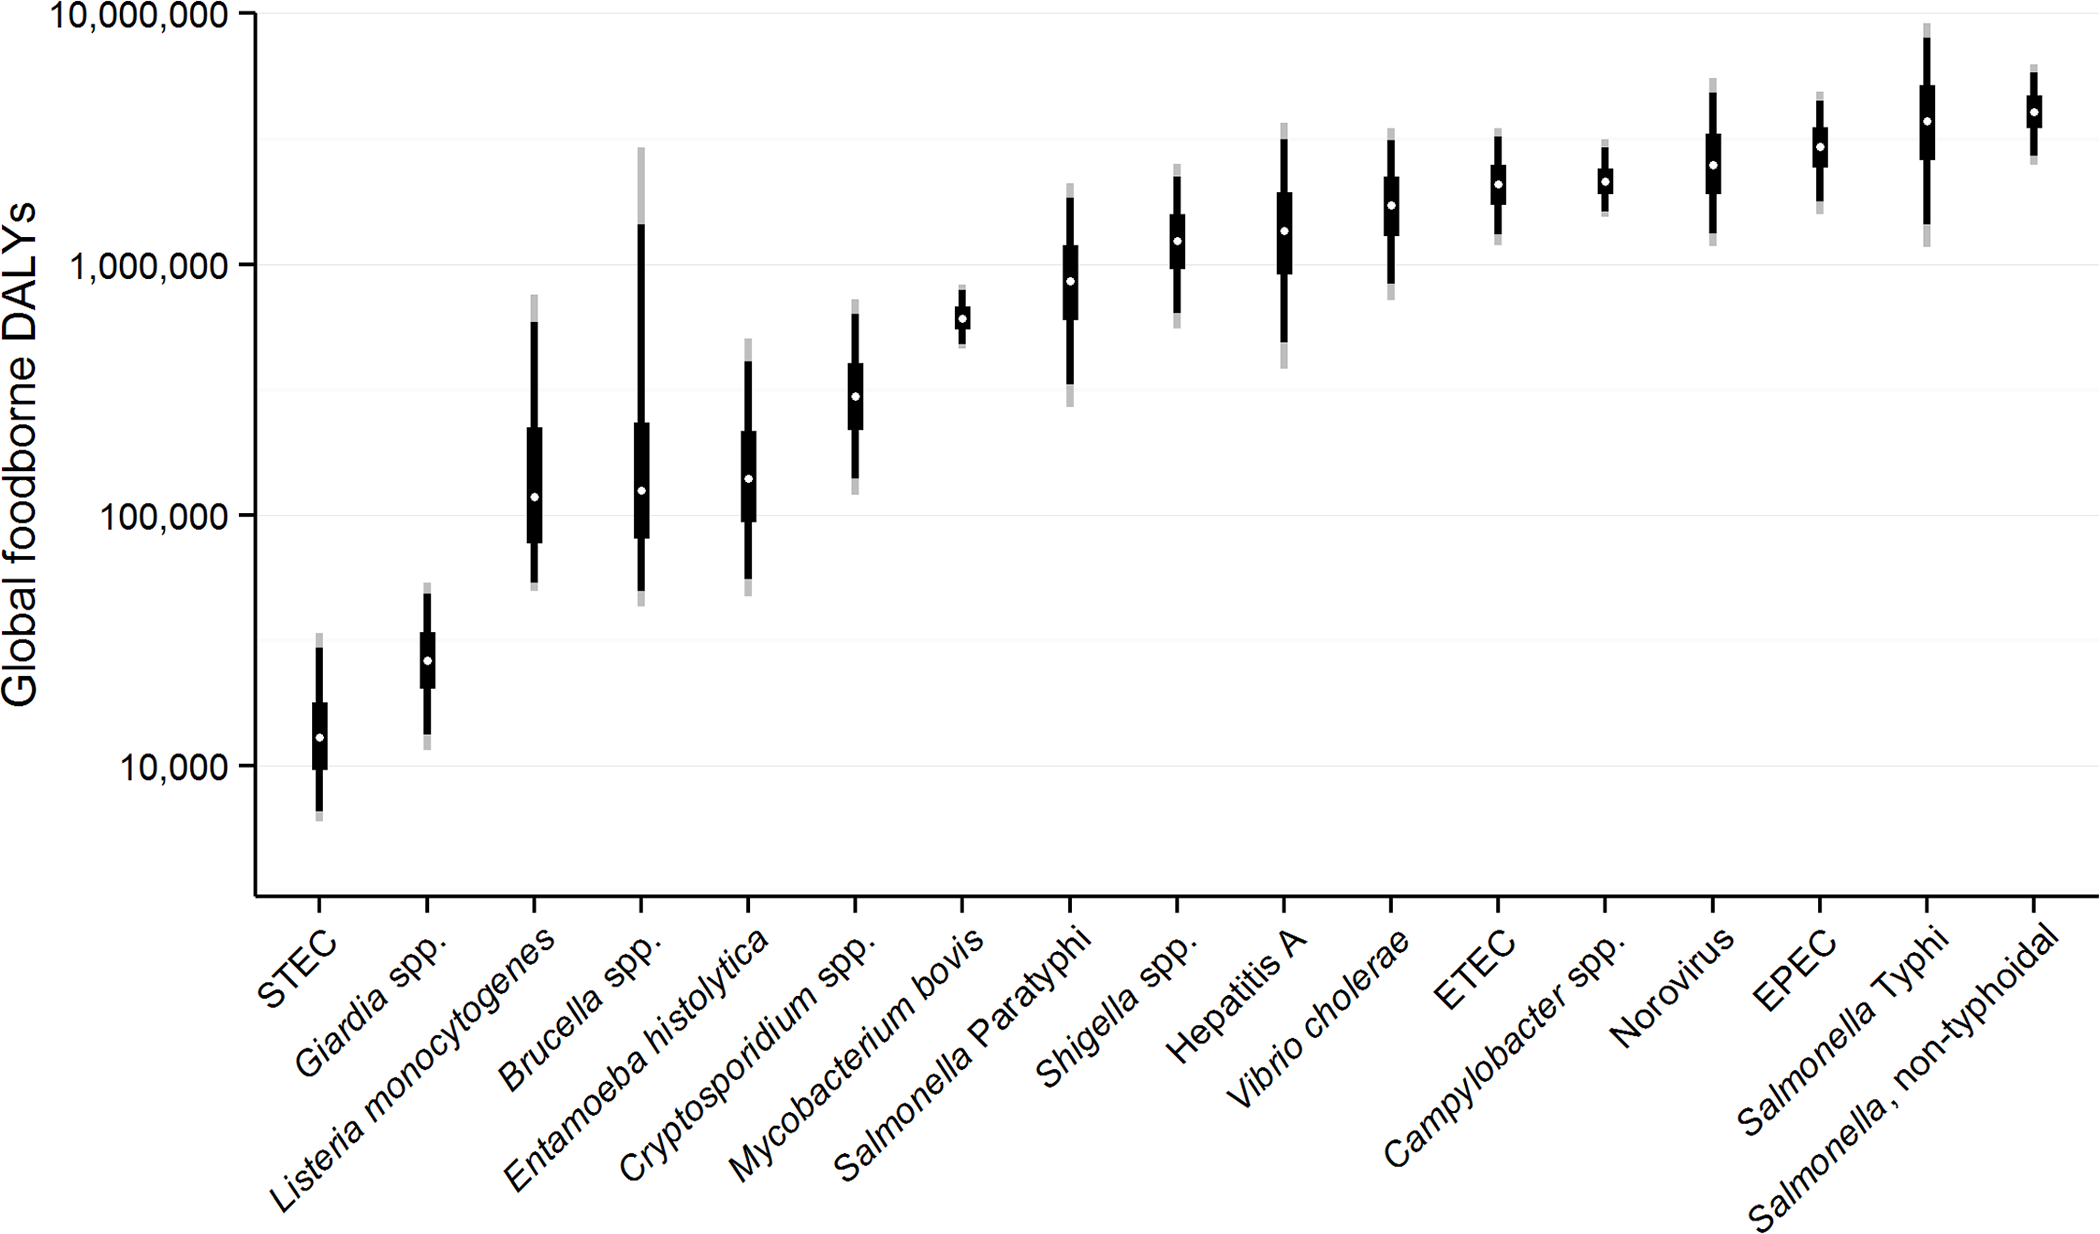 Disability Adjusted Life Years for each pathogen acquired from contaminated food ranked from lowest to highest with 95% Uncertainty Intervals, 2010.